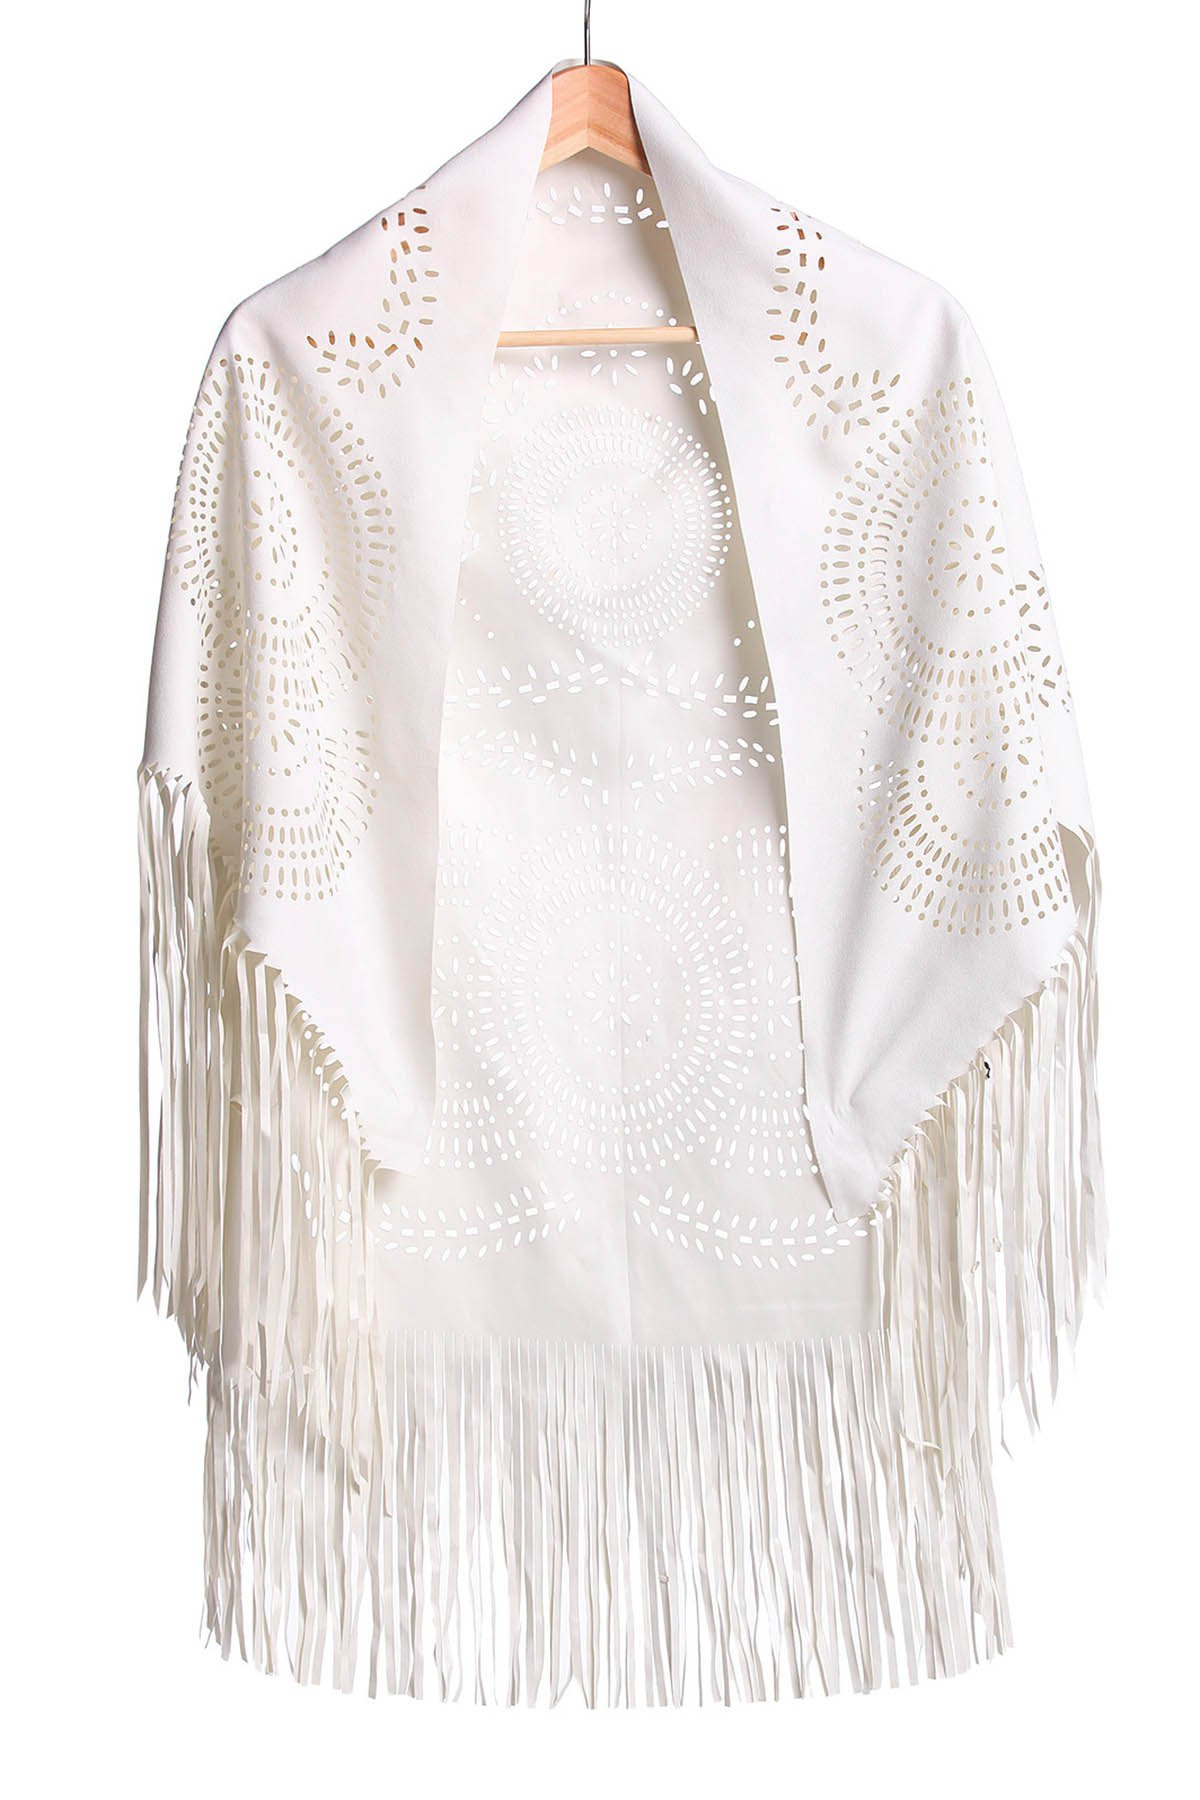 Stylish Half Sleeve Fringed Hollow Out Women's Blouse - OFF WHITE S